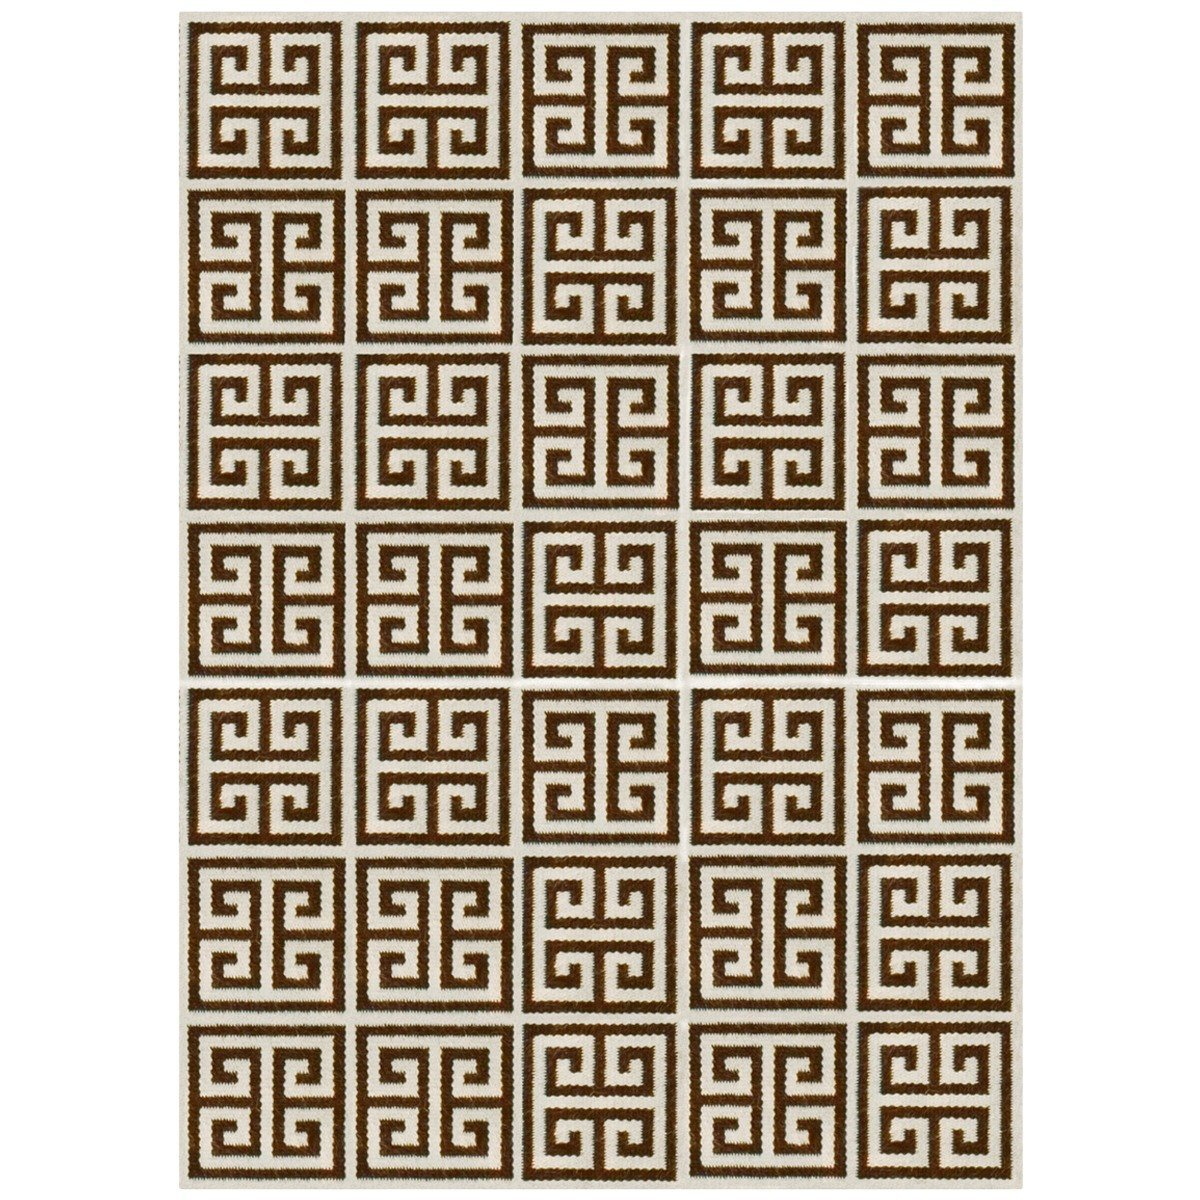 Jonathan Adler Greek Key Rug 4' X 6' Product Image